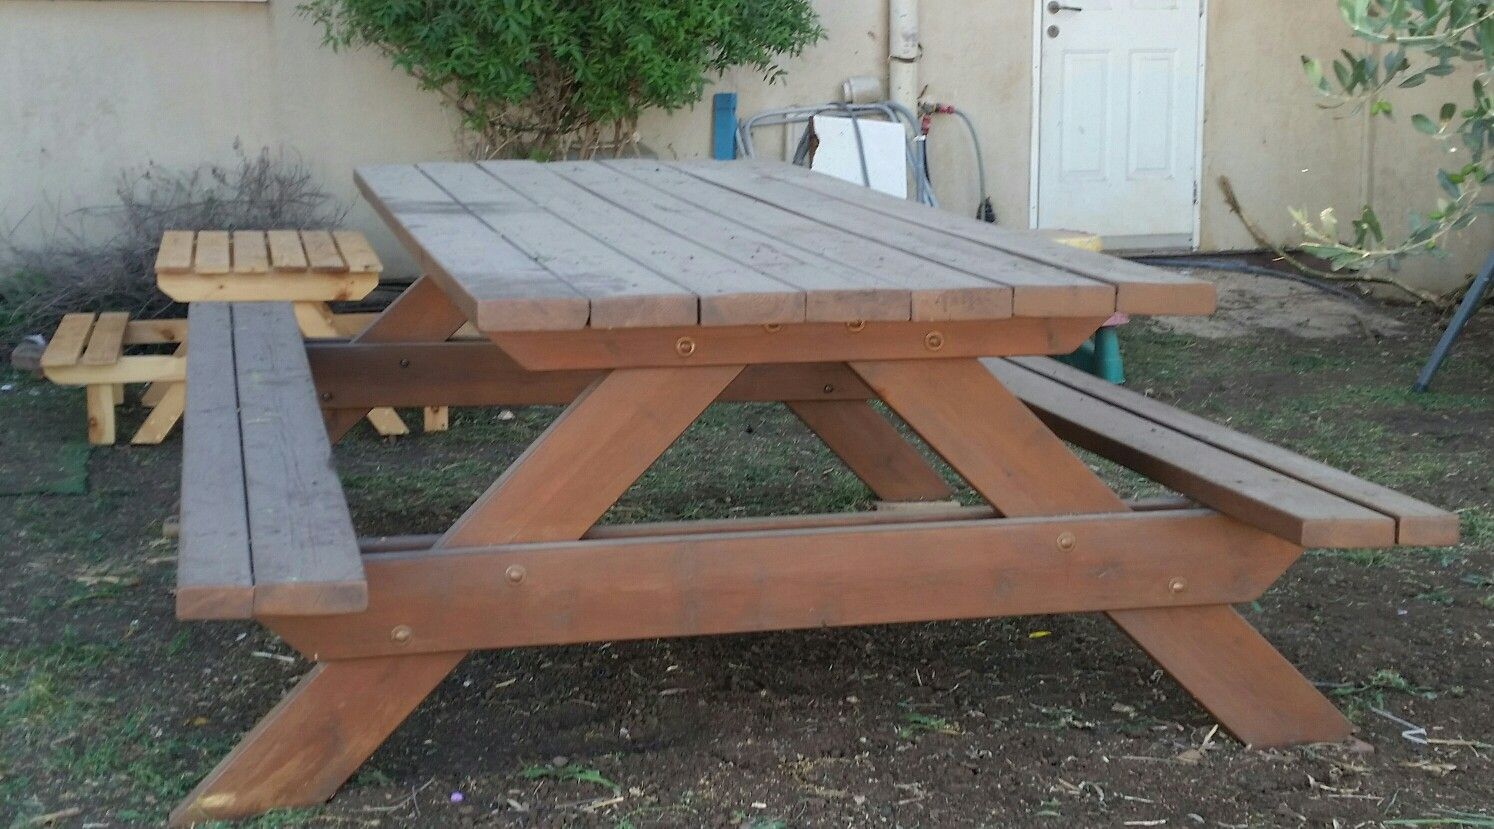 Huge Picnic Table For Diners And More עבודות עצמאיות - Huge picnic table